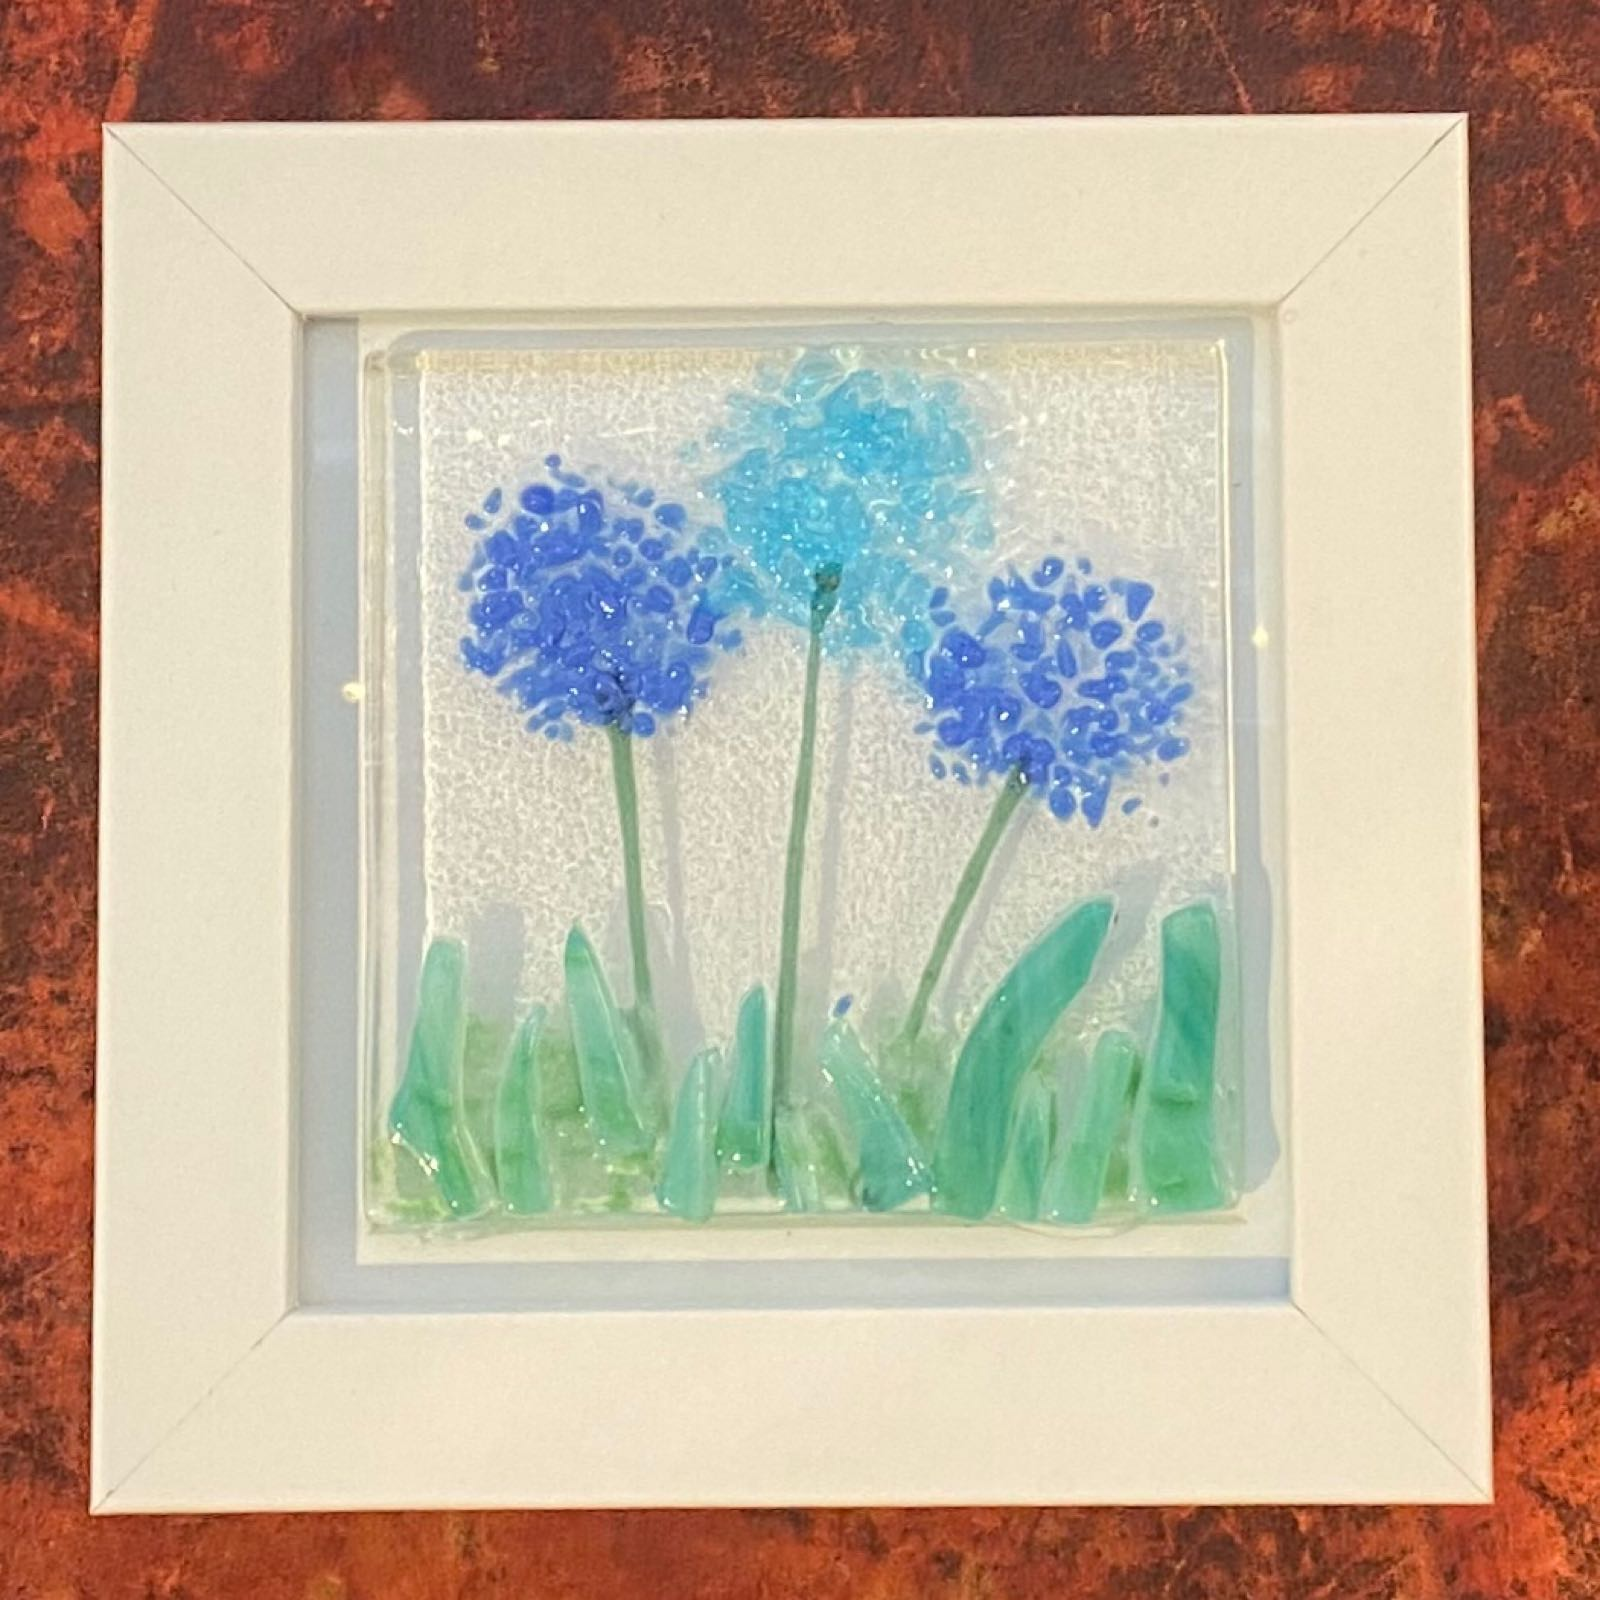 Alliums Picture - Box Framed 12x12cm